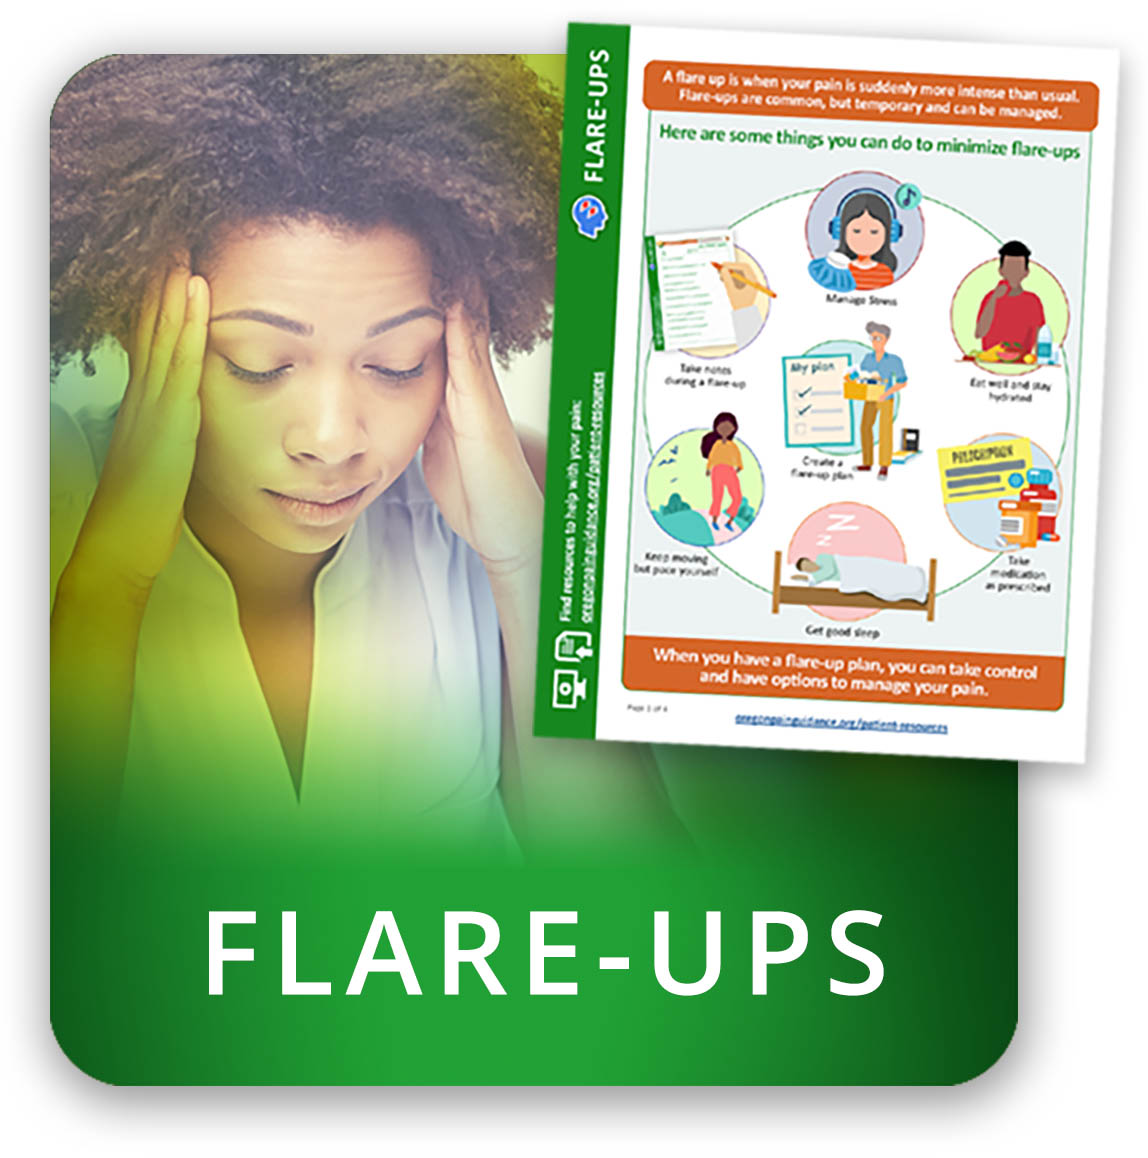 Understand how to manage pain flare-ups